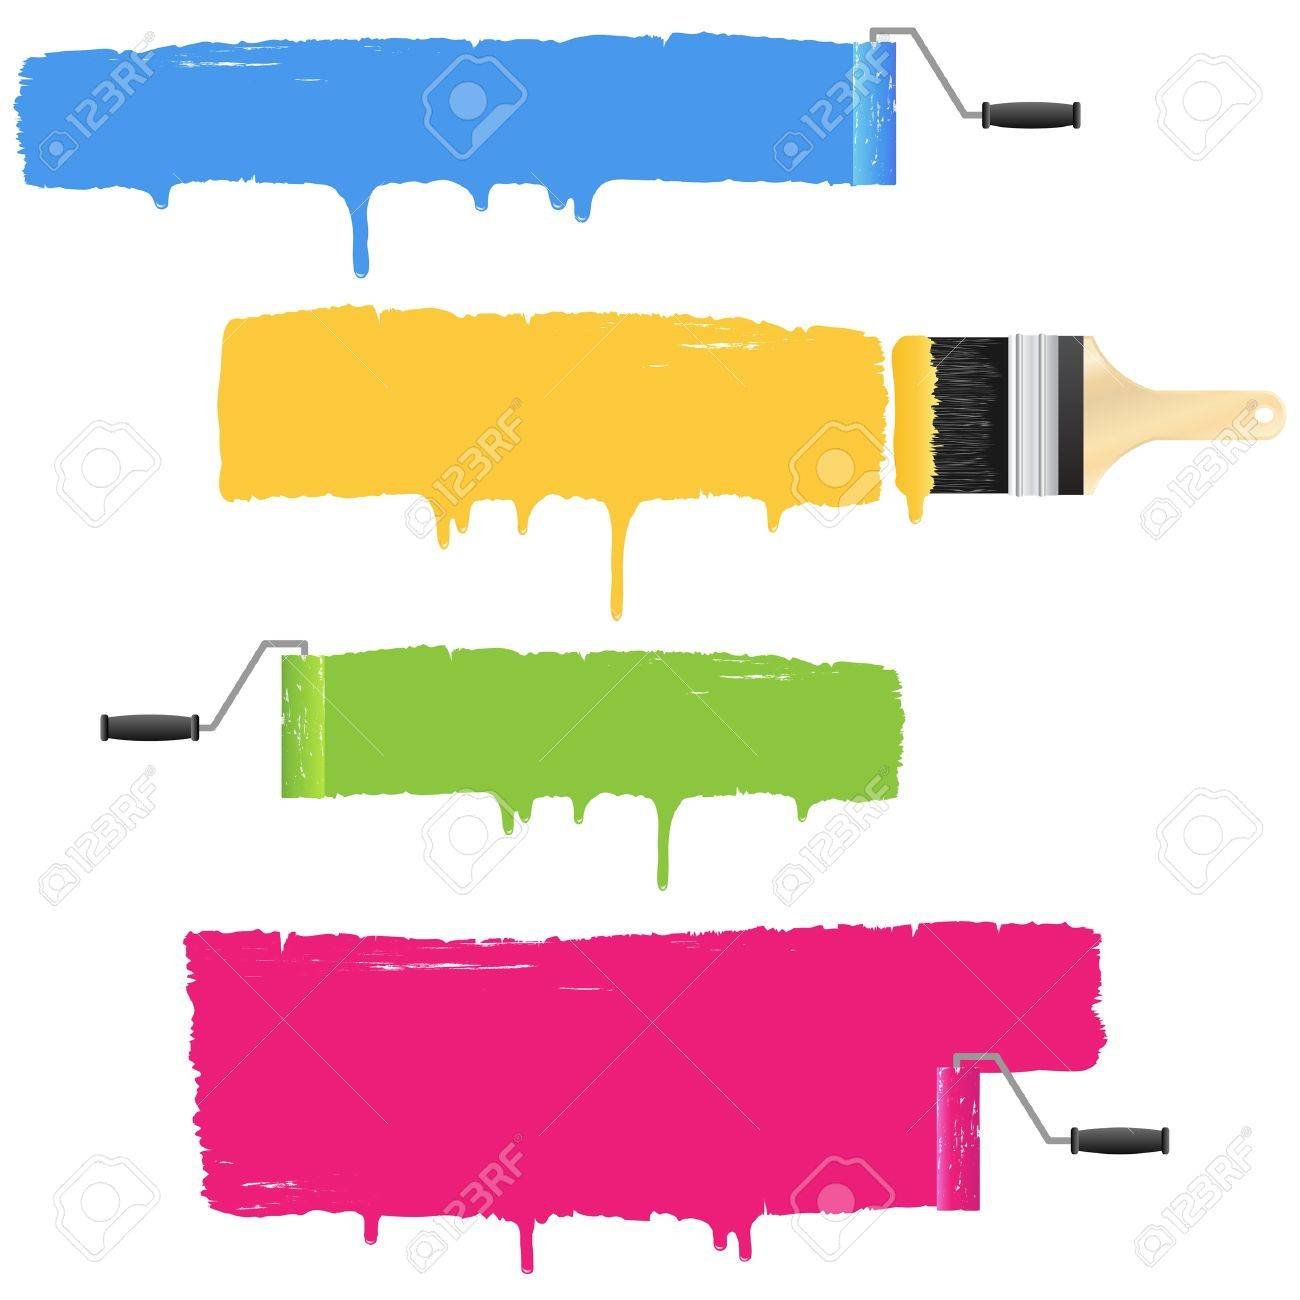 Colorful paint roller and brush smear banners - 15700430